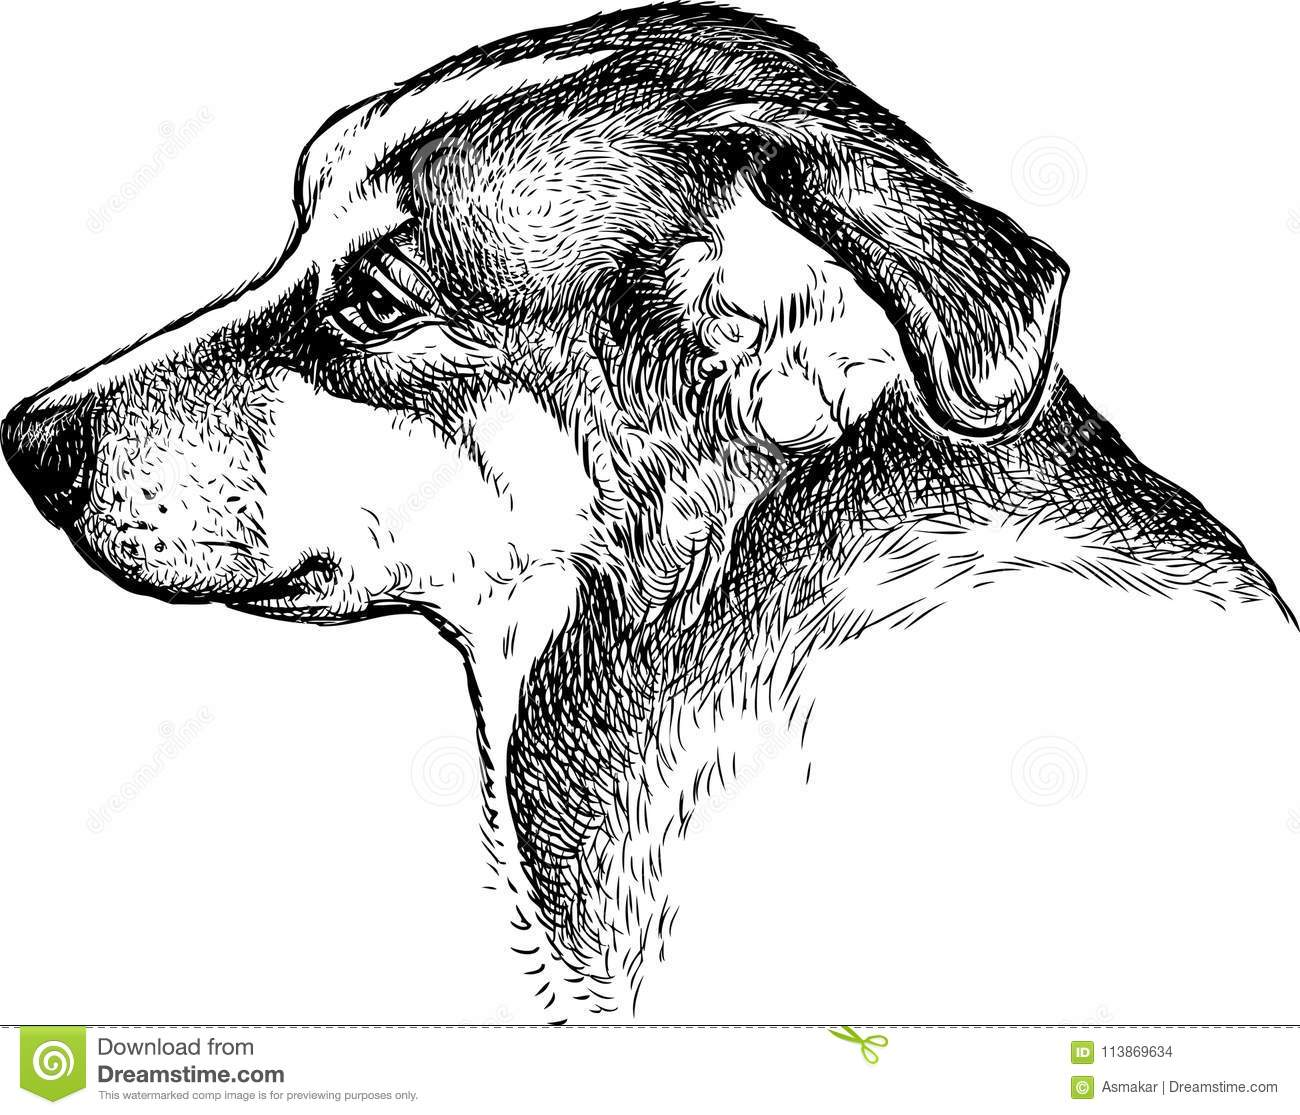 Sketch Portrait Of A Sad Dog Stock Vector - Illustration of animal